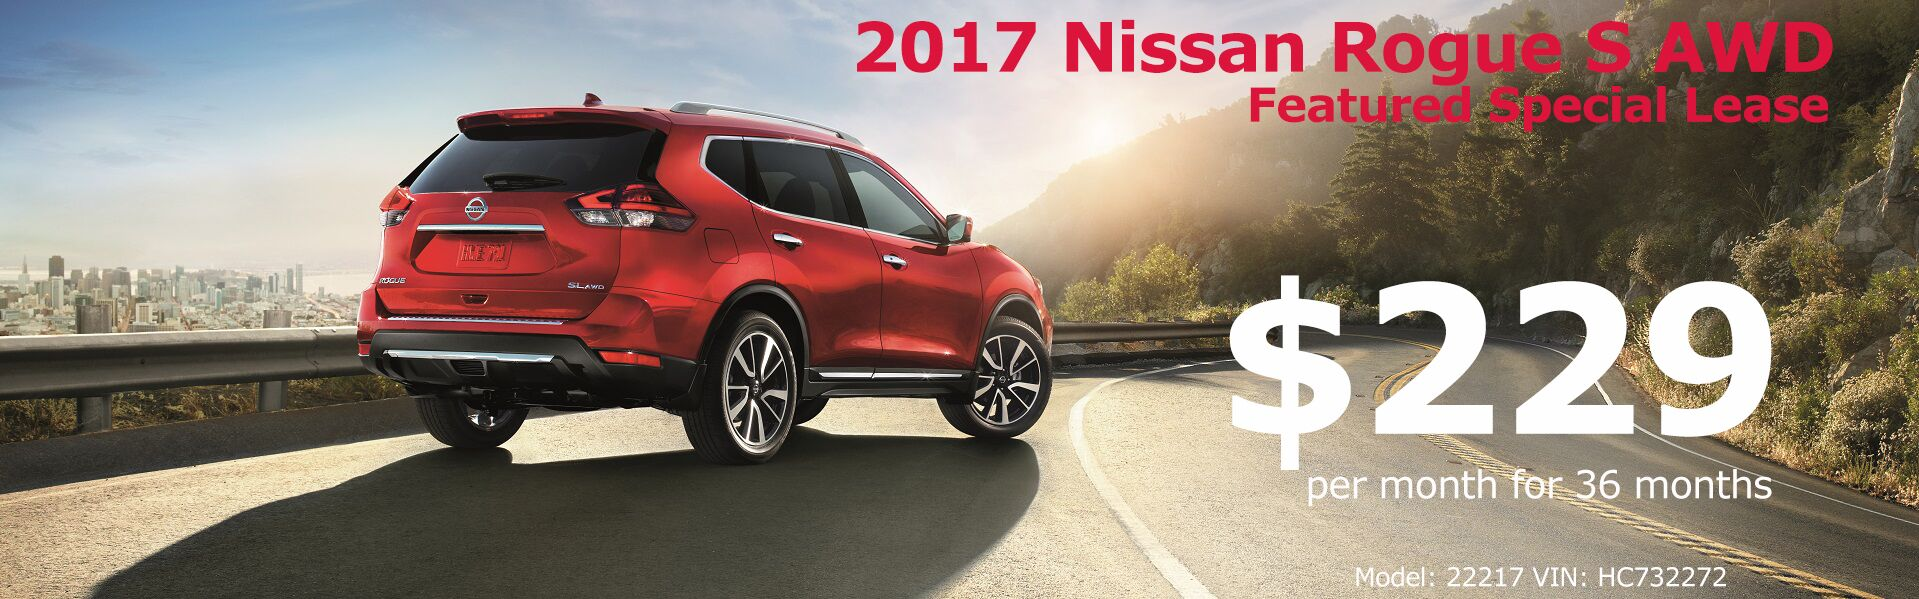 2017 Nissan Rogue Lease Special